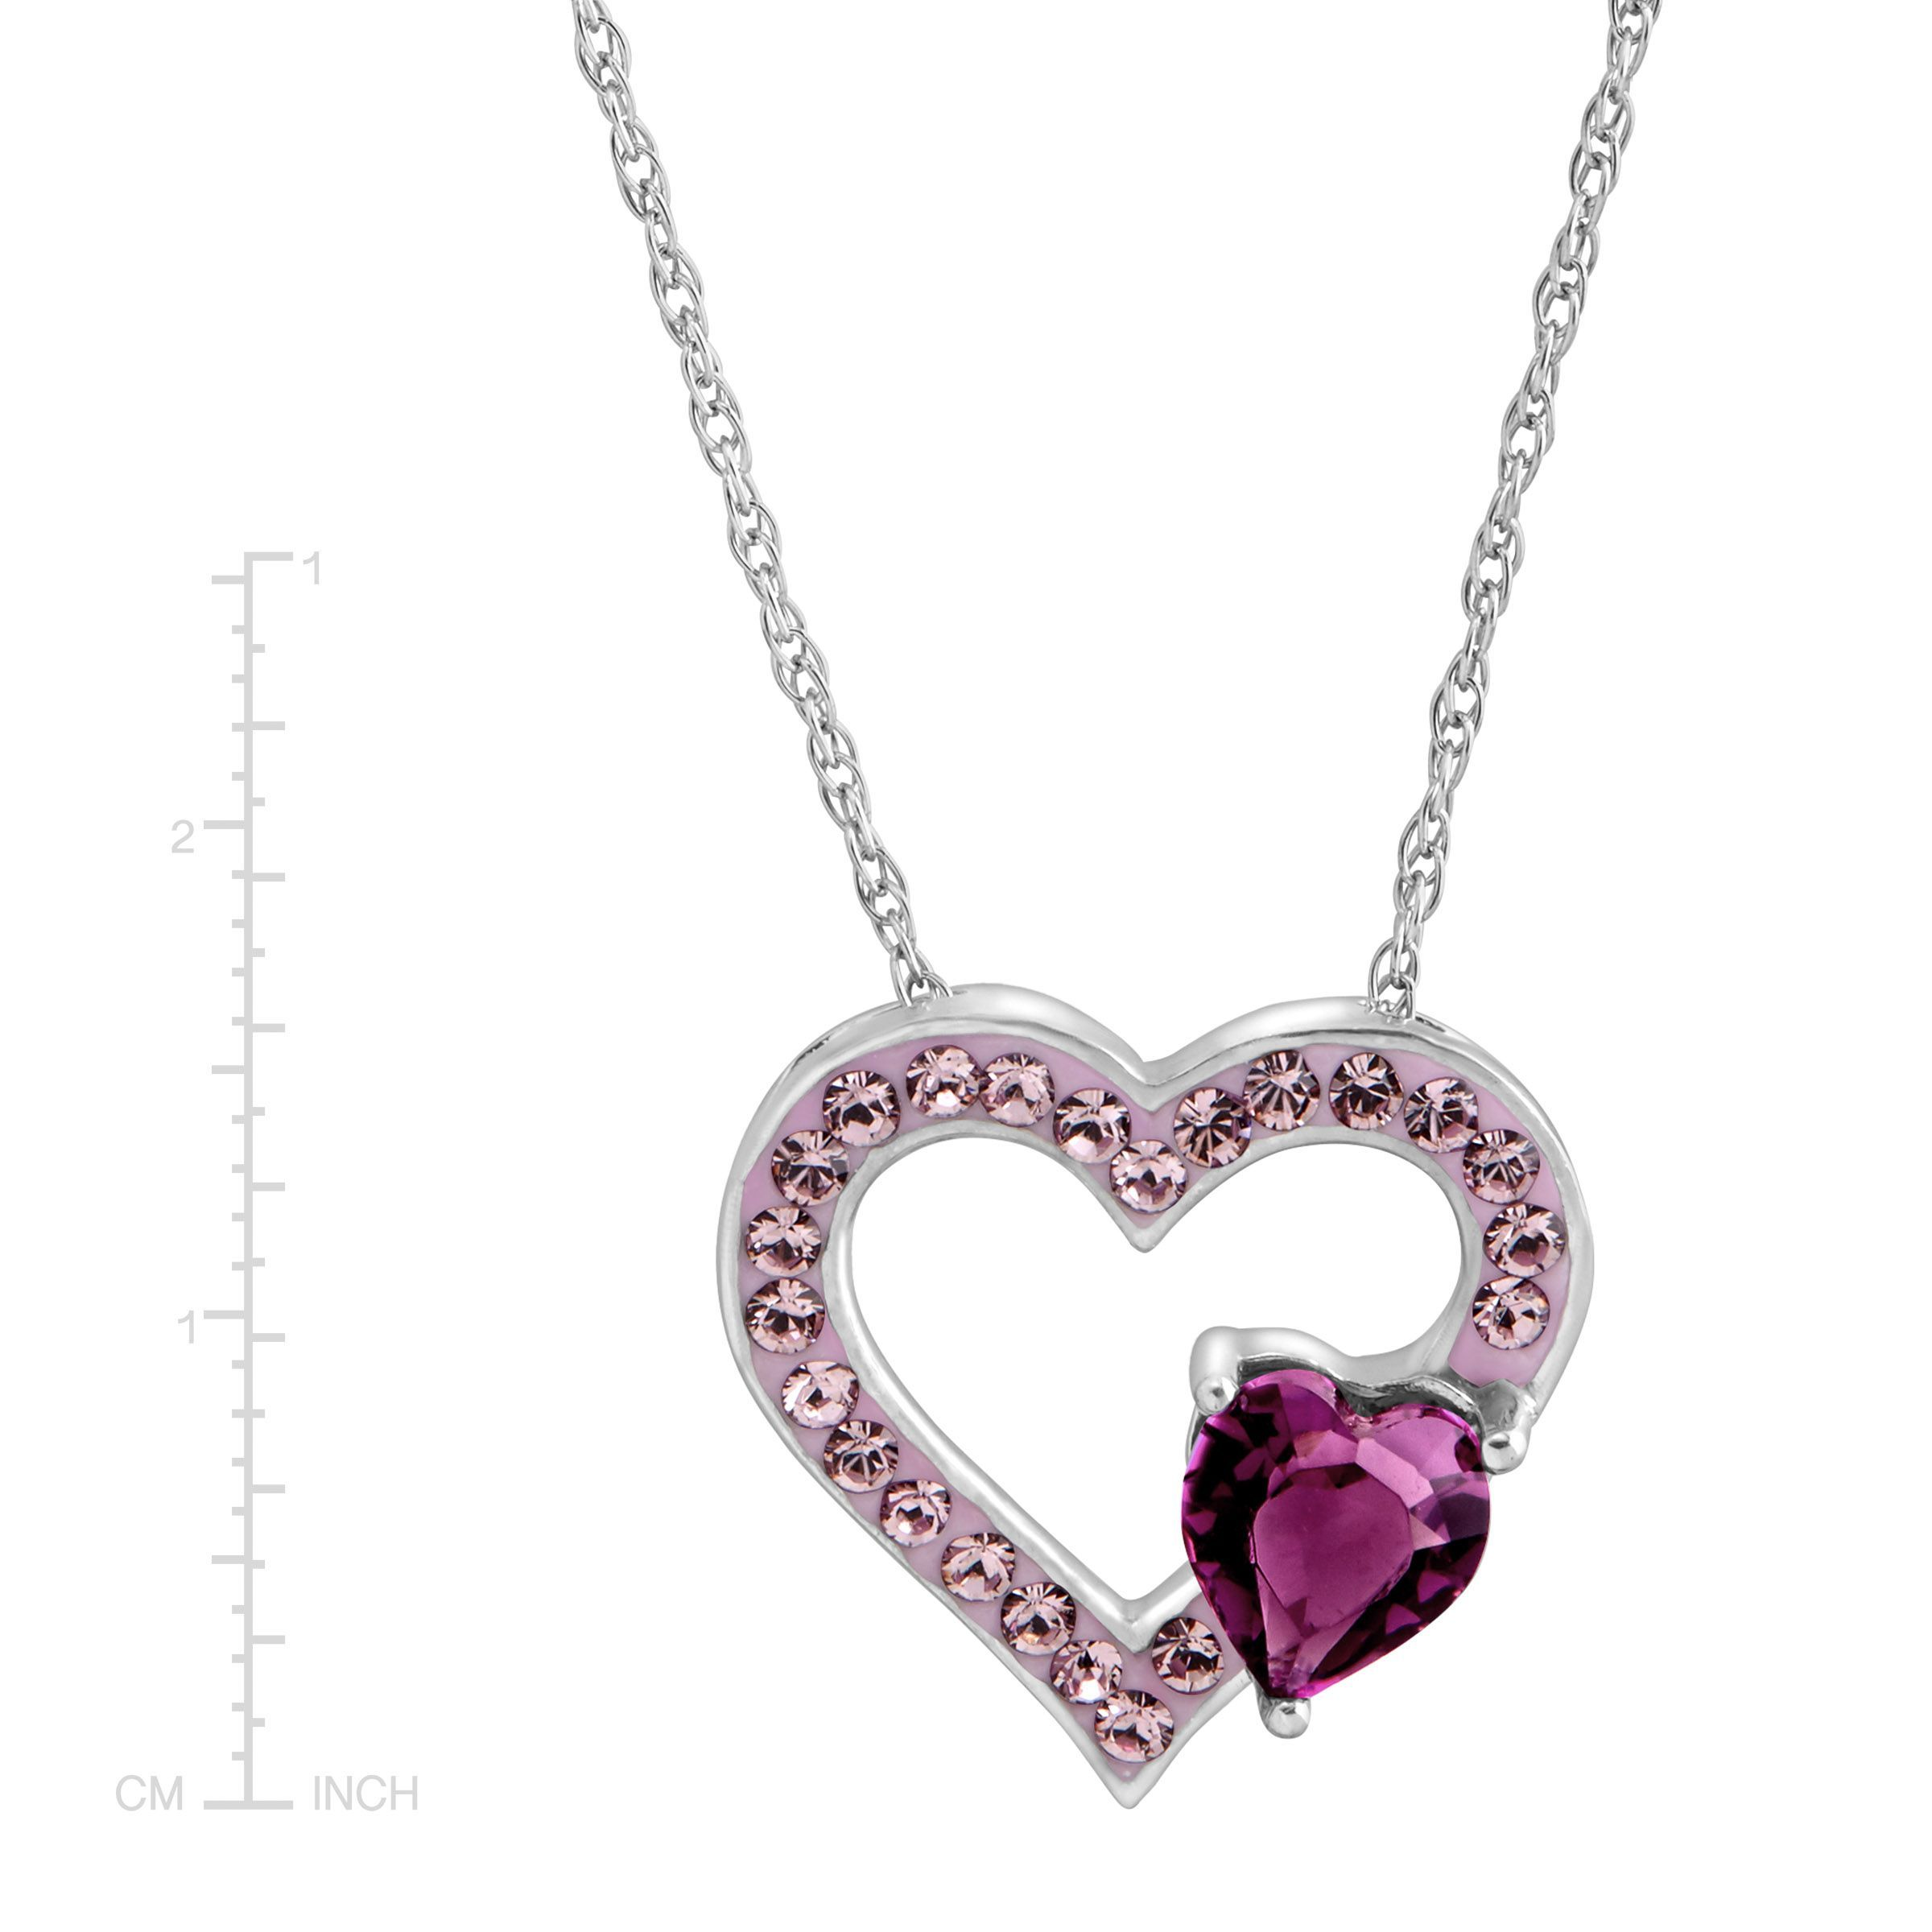 pendant afbf dsc products heart necklace open ways